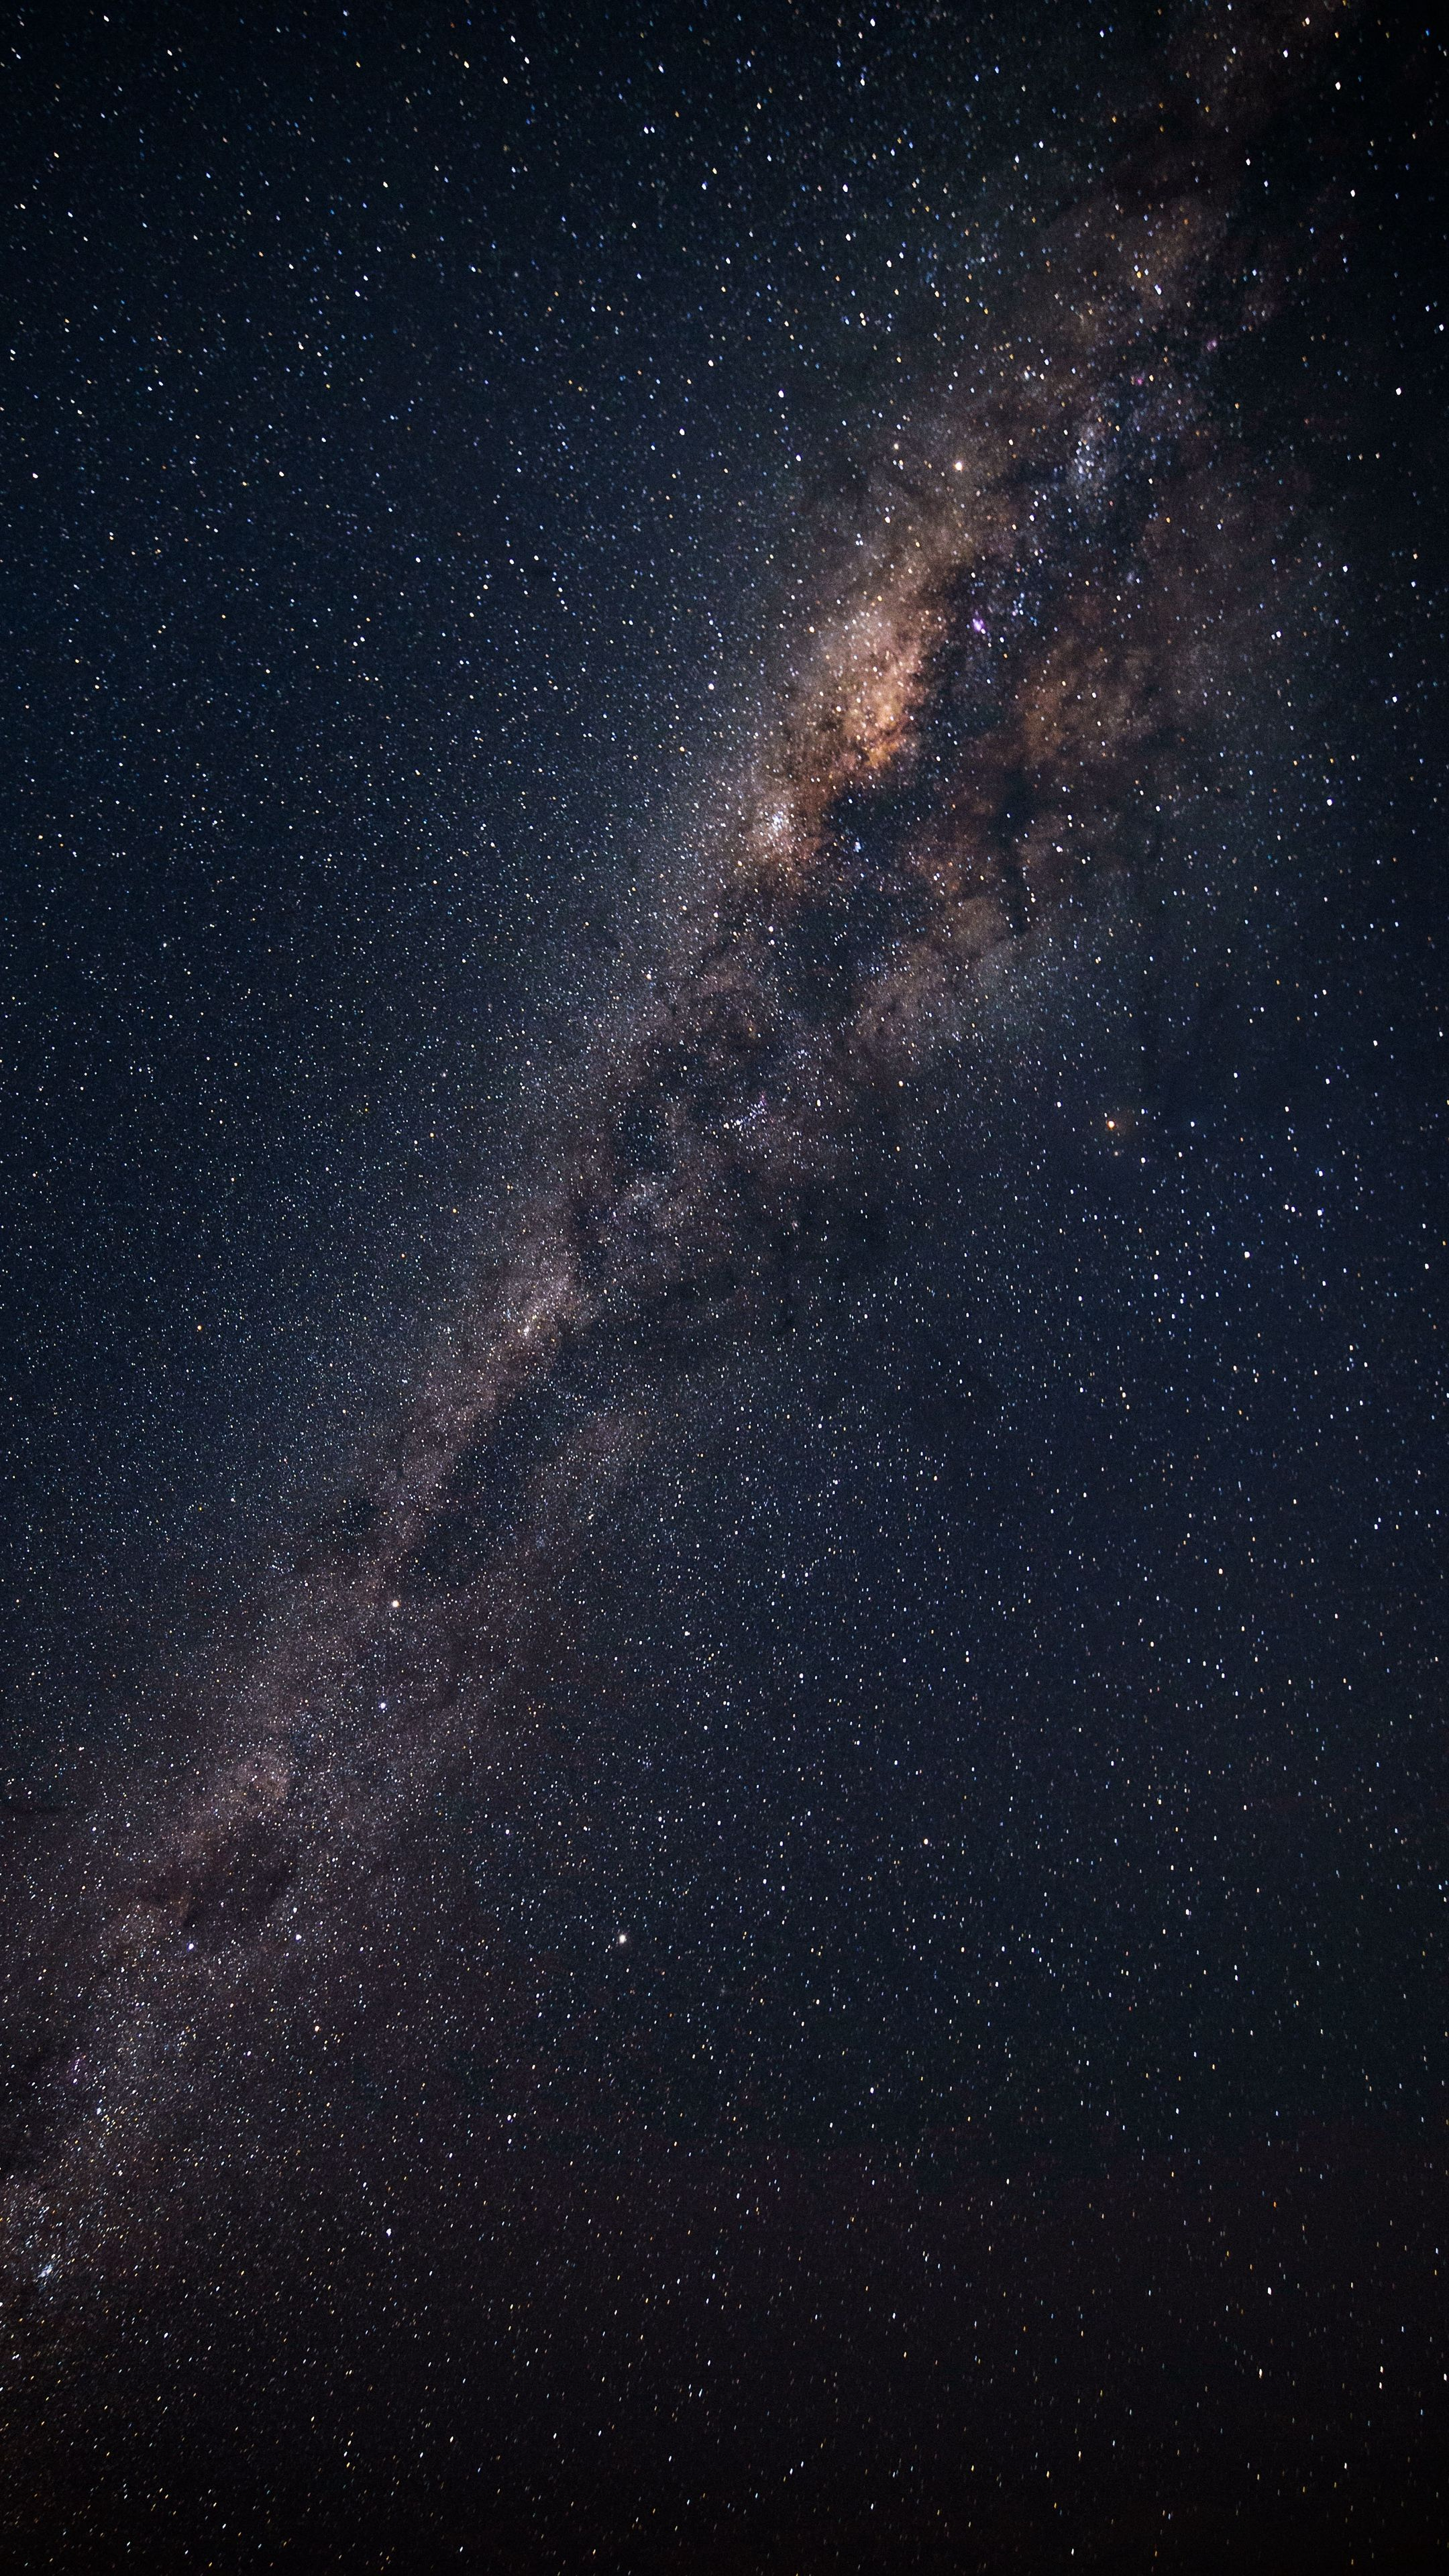 2160x3840 wallpaper starry sky milky way astronomy - 2160x3840 wallpaper ...